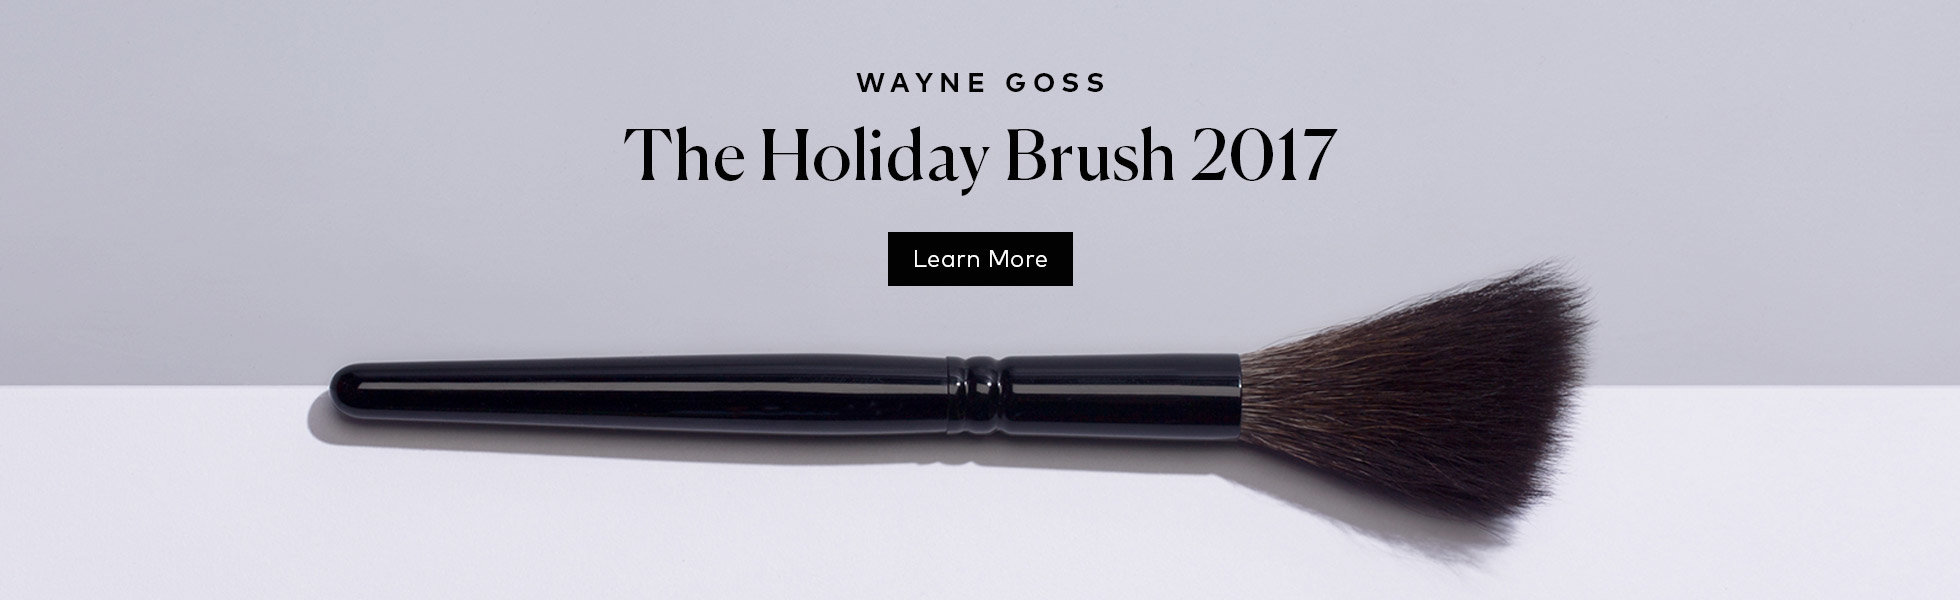 Wayne Goss The Holiday Brush 2017